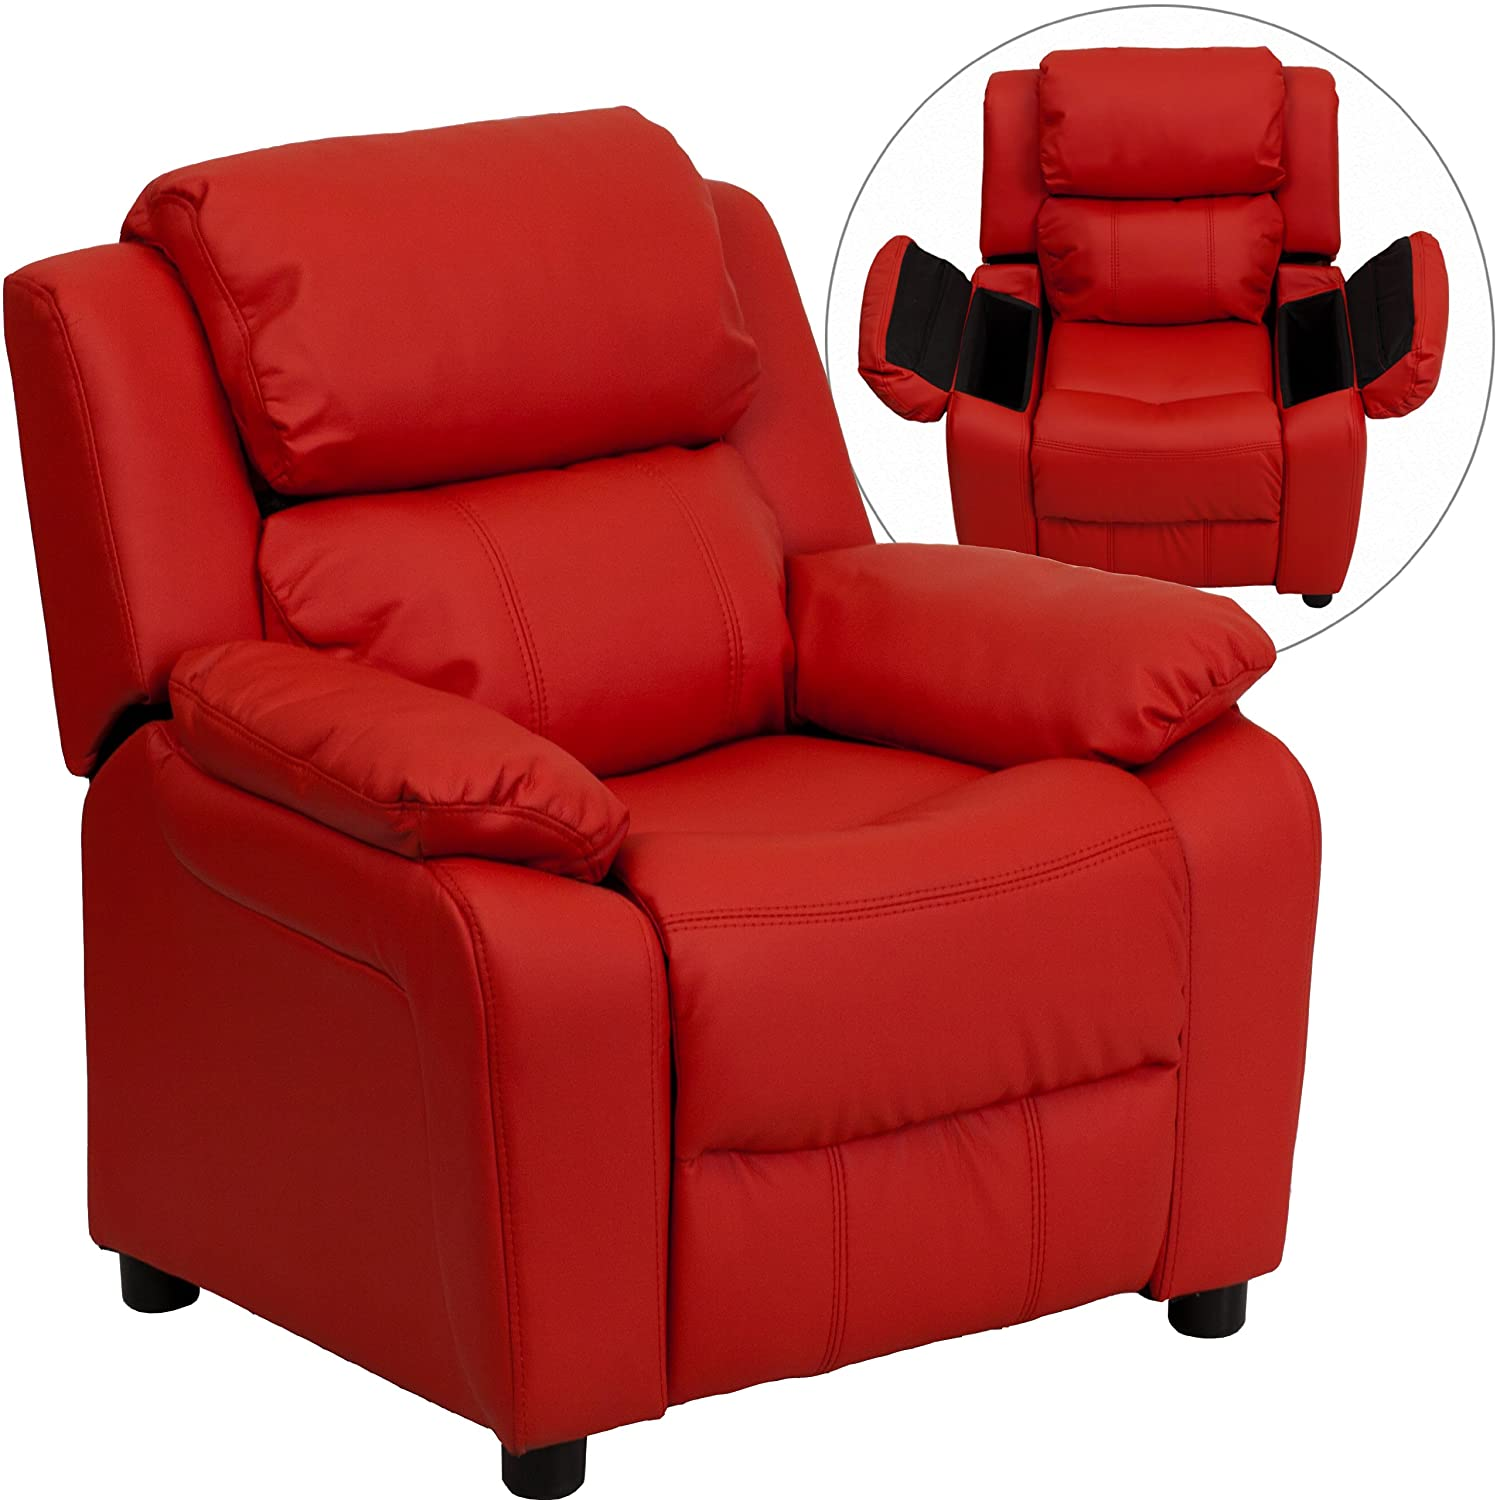 Amazon.com Flash Furniture Deluxe Padded Contemporary Red Vinyl Kids Recliner with Storage Arms Kitchen u0026 Dining  sc 1 st  Amazon.com & Amazon.com: Flash Furniture Deluxe Padded Contemporary Red Vinyl ... islam-shia.org